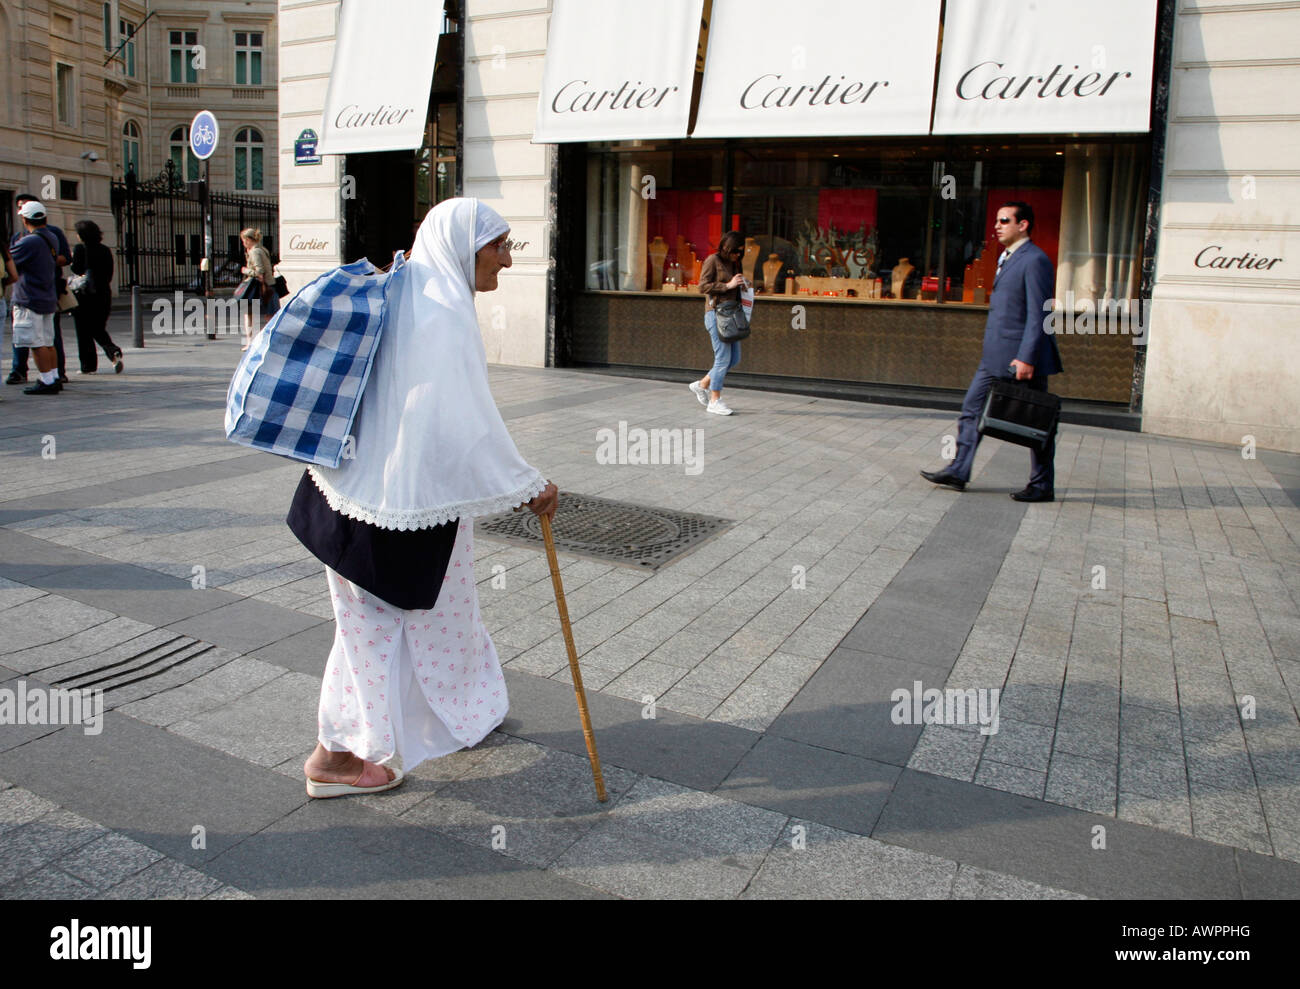 Beggar in front of the Cartier boutique on Avenue des Champs Elysées in Paris, France, Europe - Stock Image